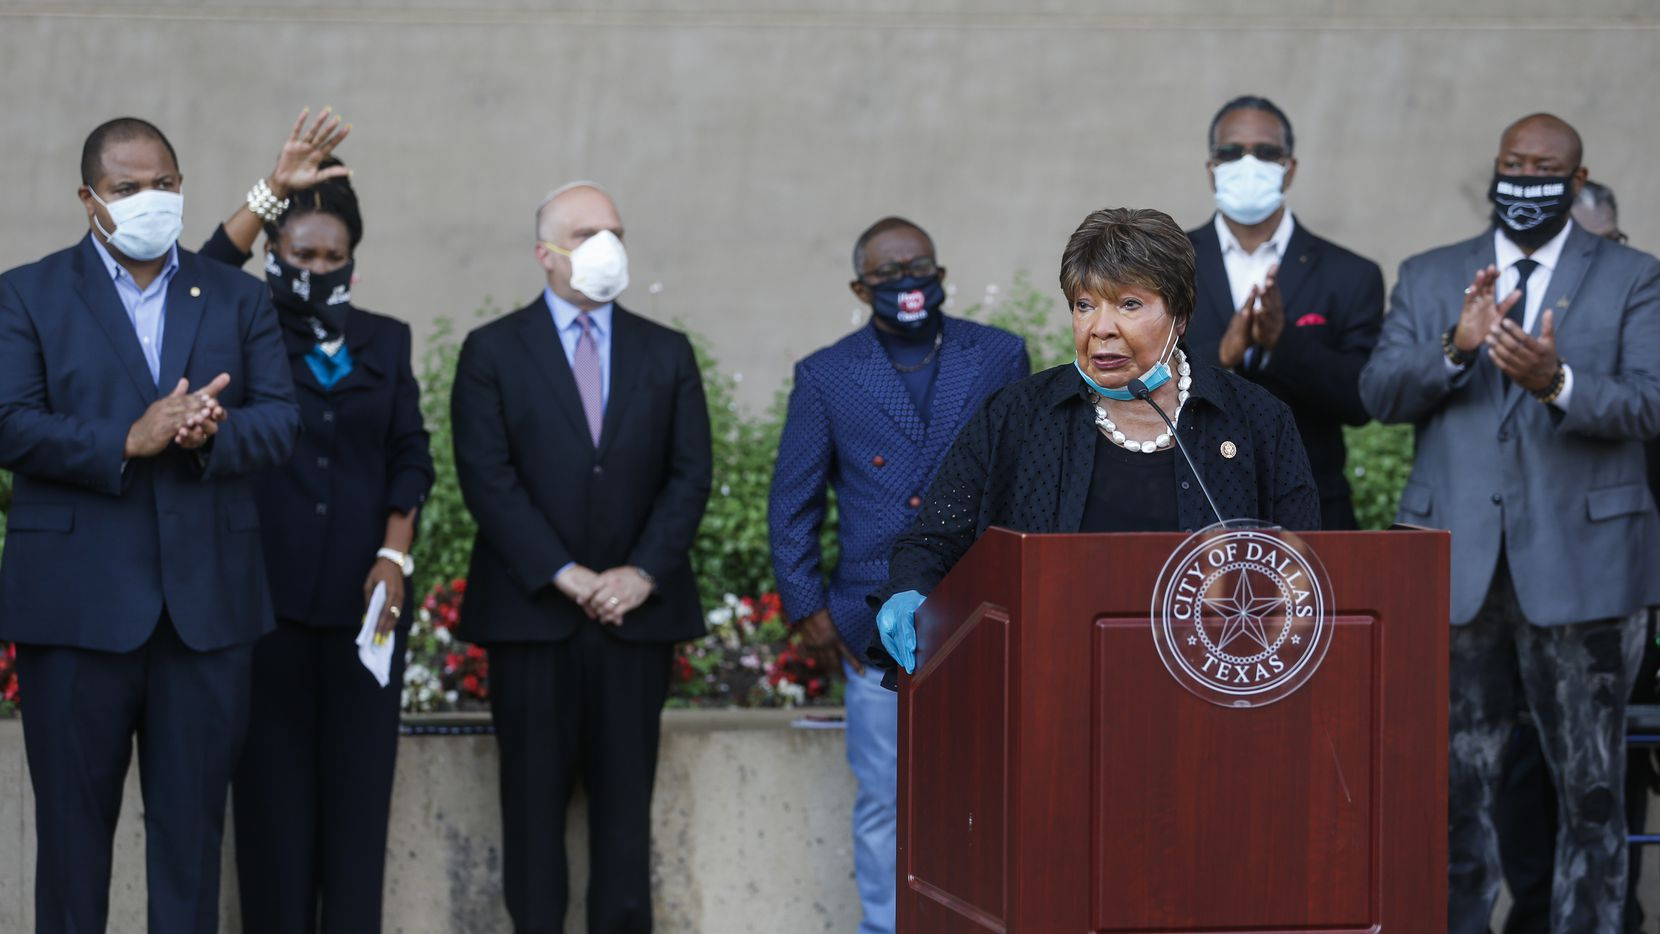 U.S. Rep. Eddie Bernice Johnson speaks during a memorial service for George Floyd on Friday, June 5, 2020 at City Hall in Dallas.